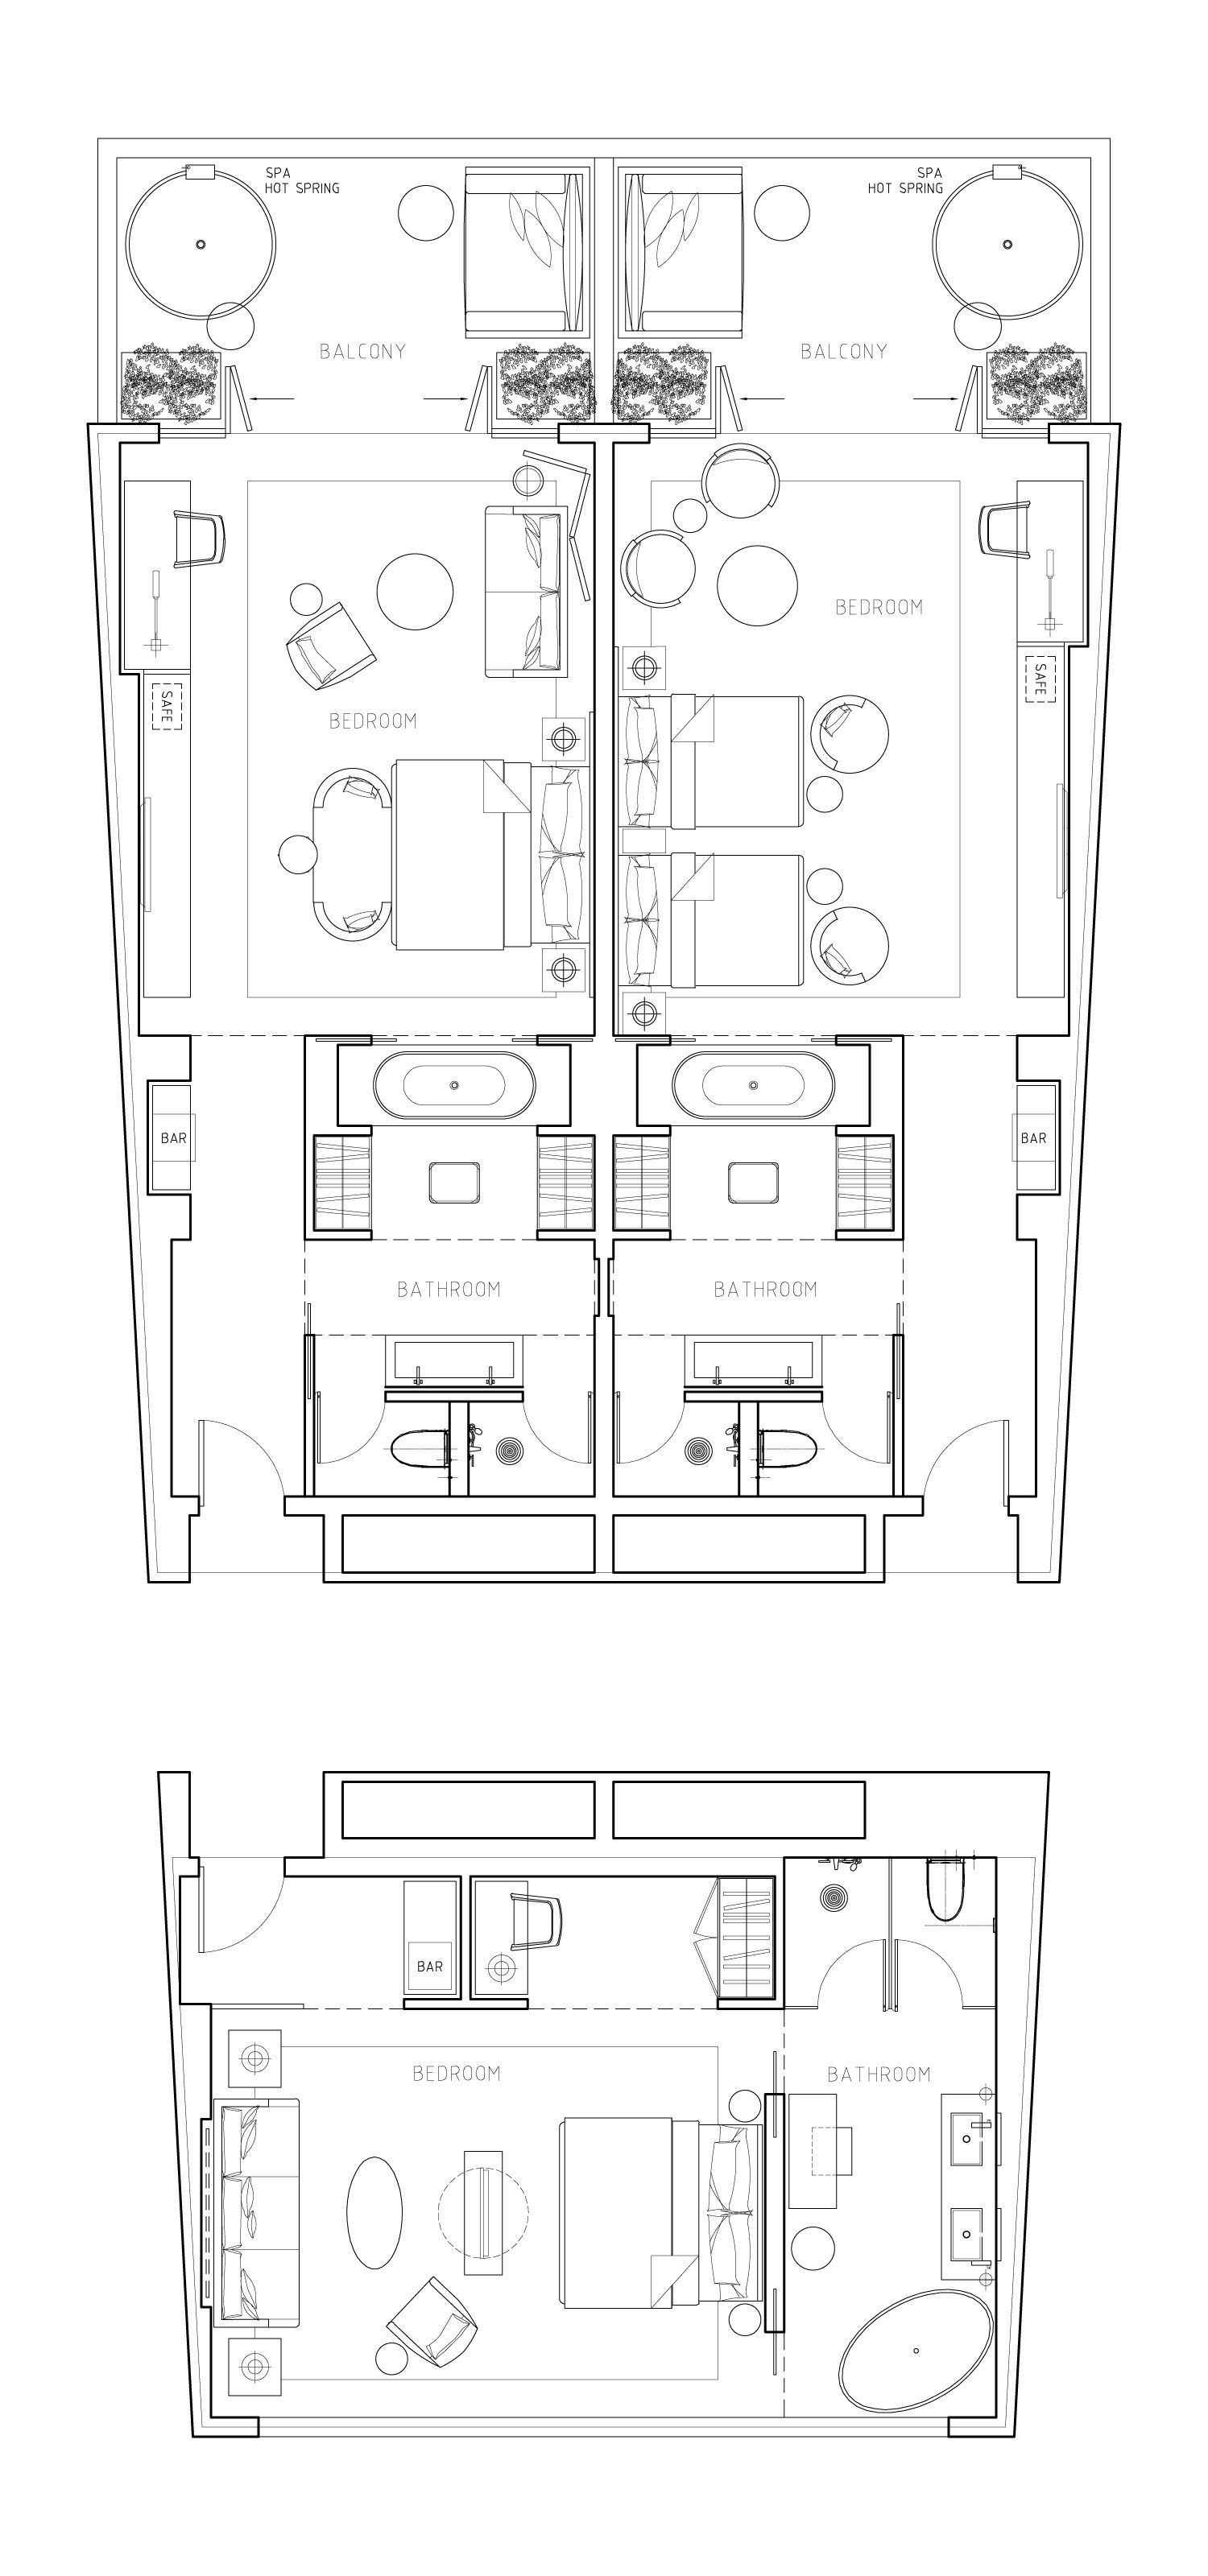 ^ rchitectural Floor Plan Symbols #stairs Pinned by www.modlar.com ...